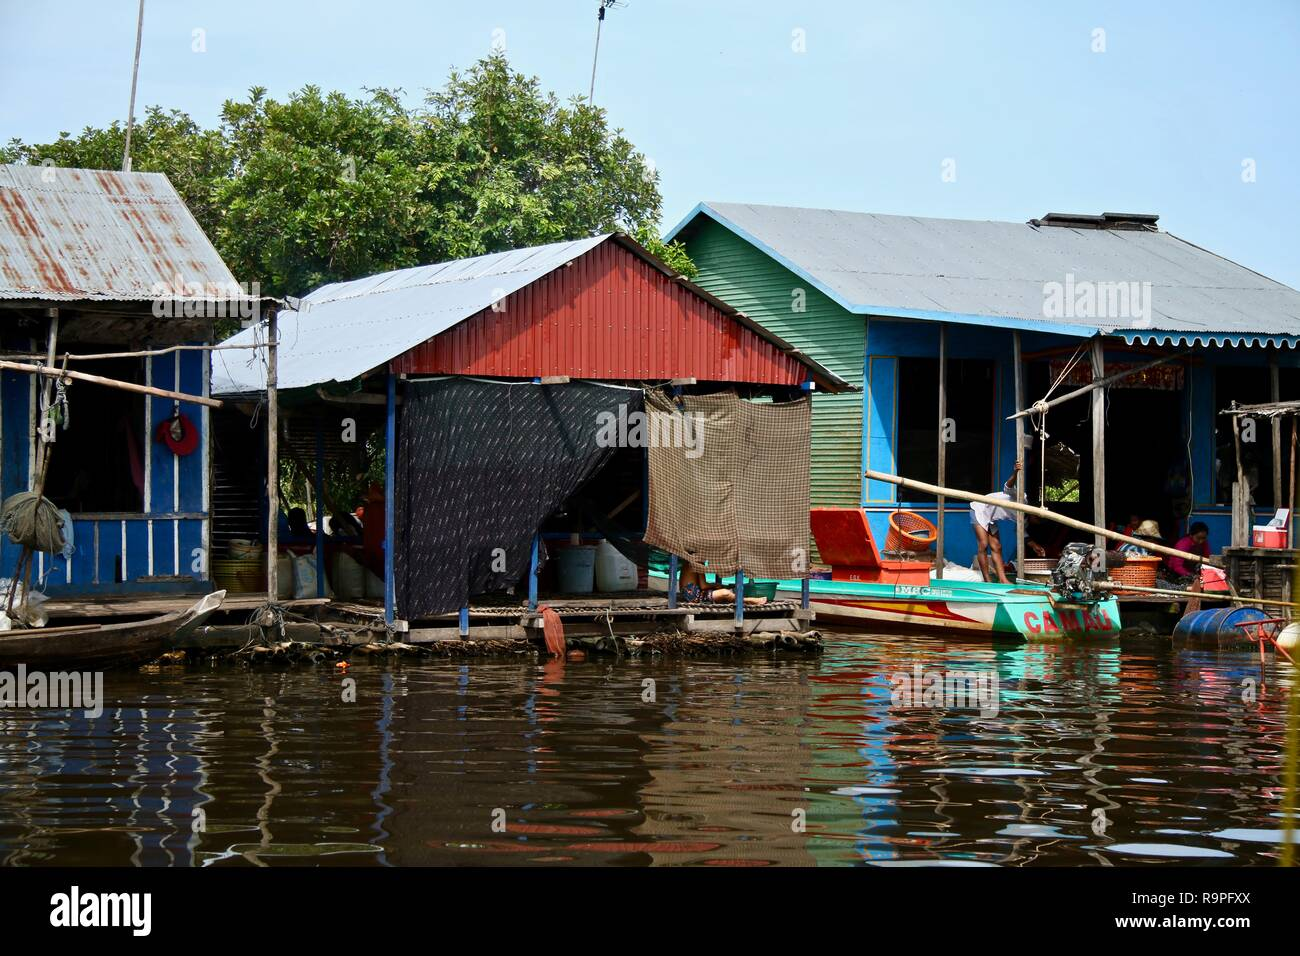 Floating homes at a floating village in Asia - Stock Image